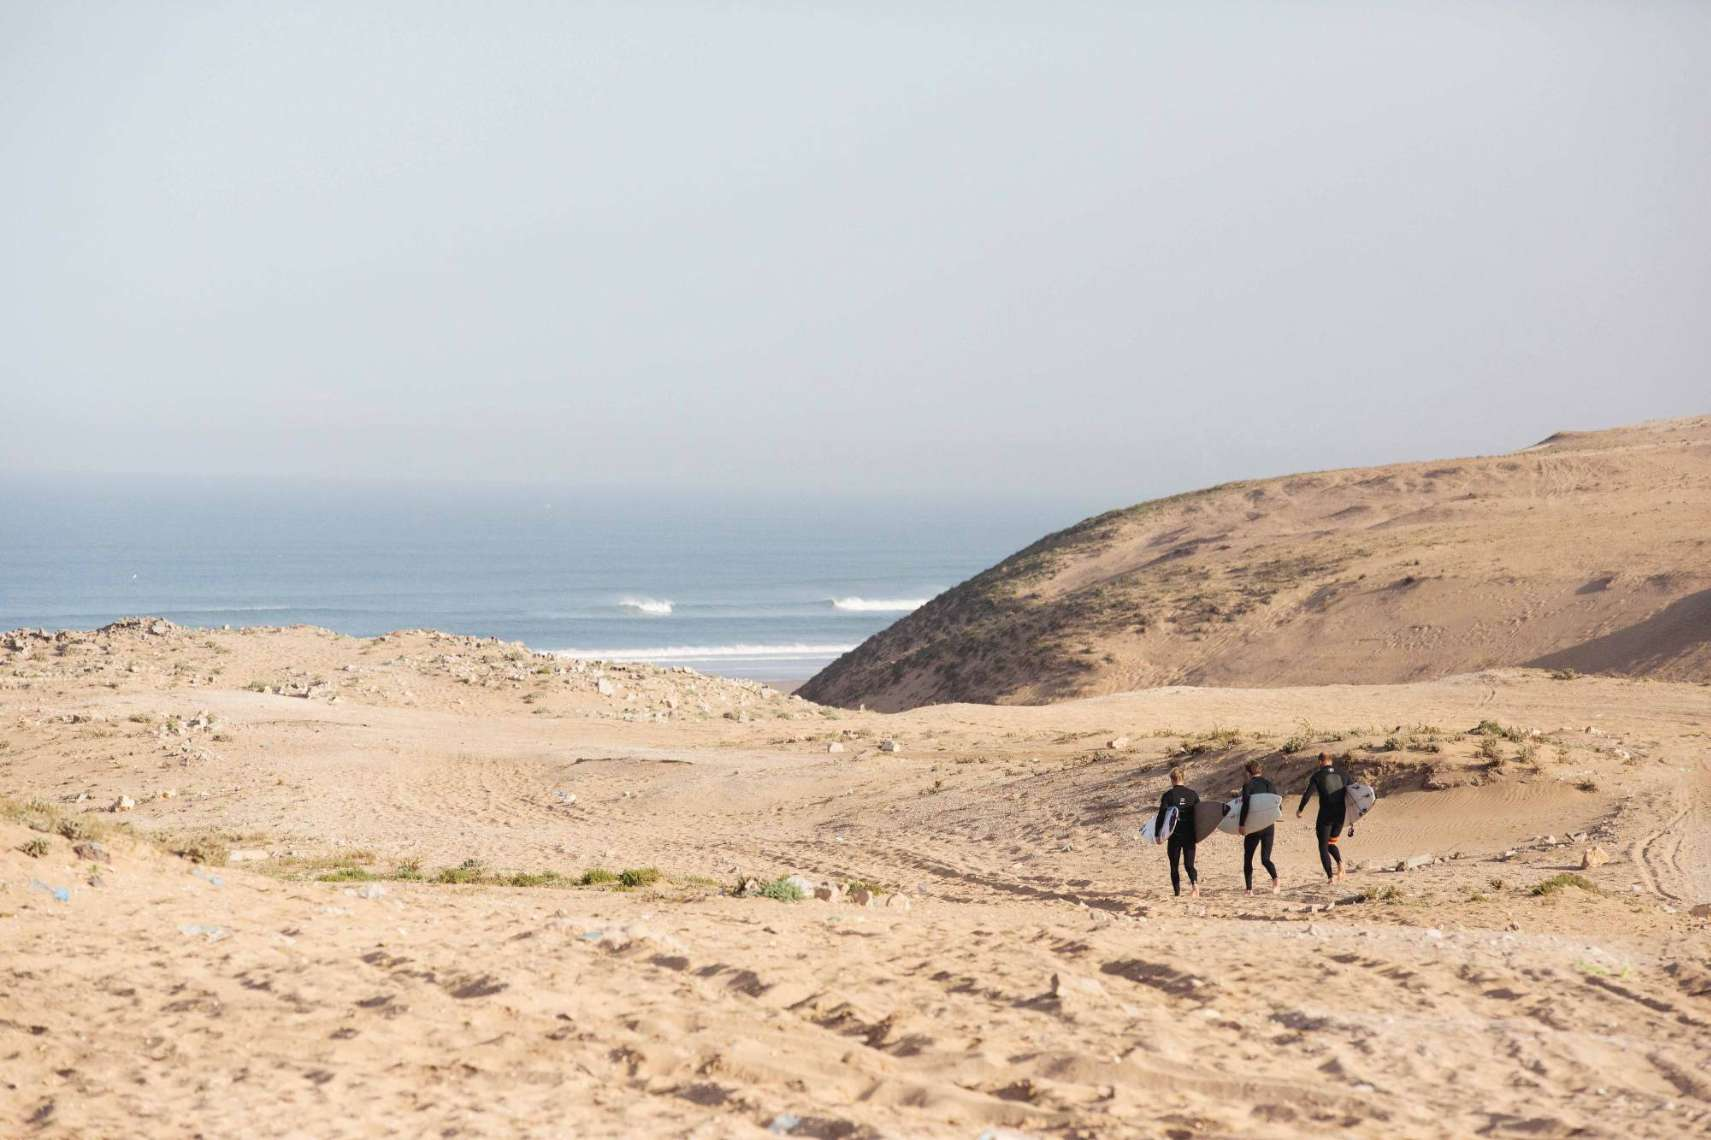 or to the surf spots in Morocco.